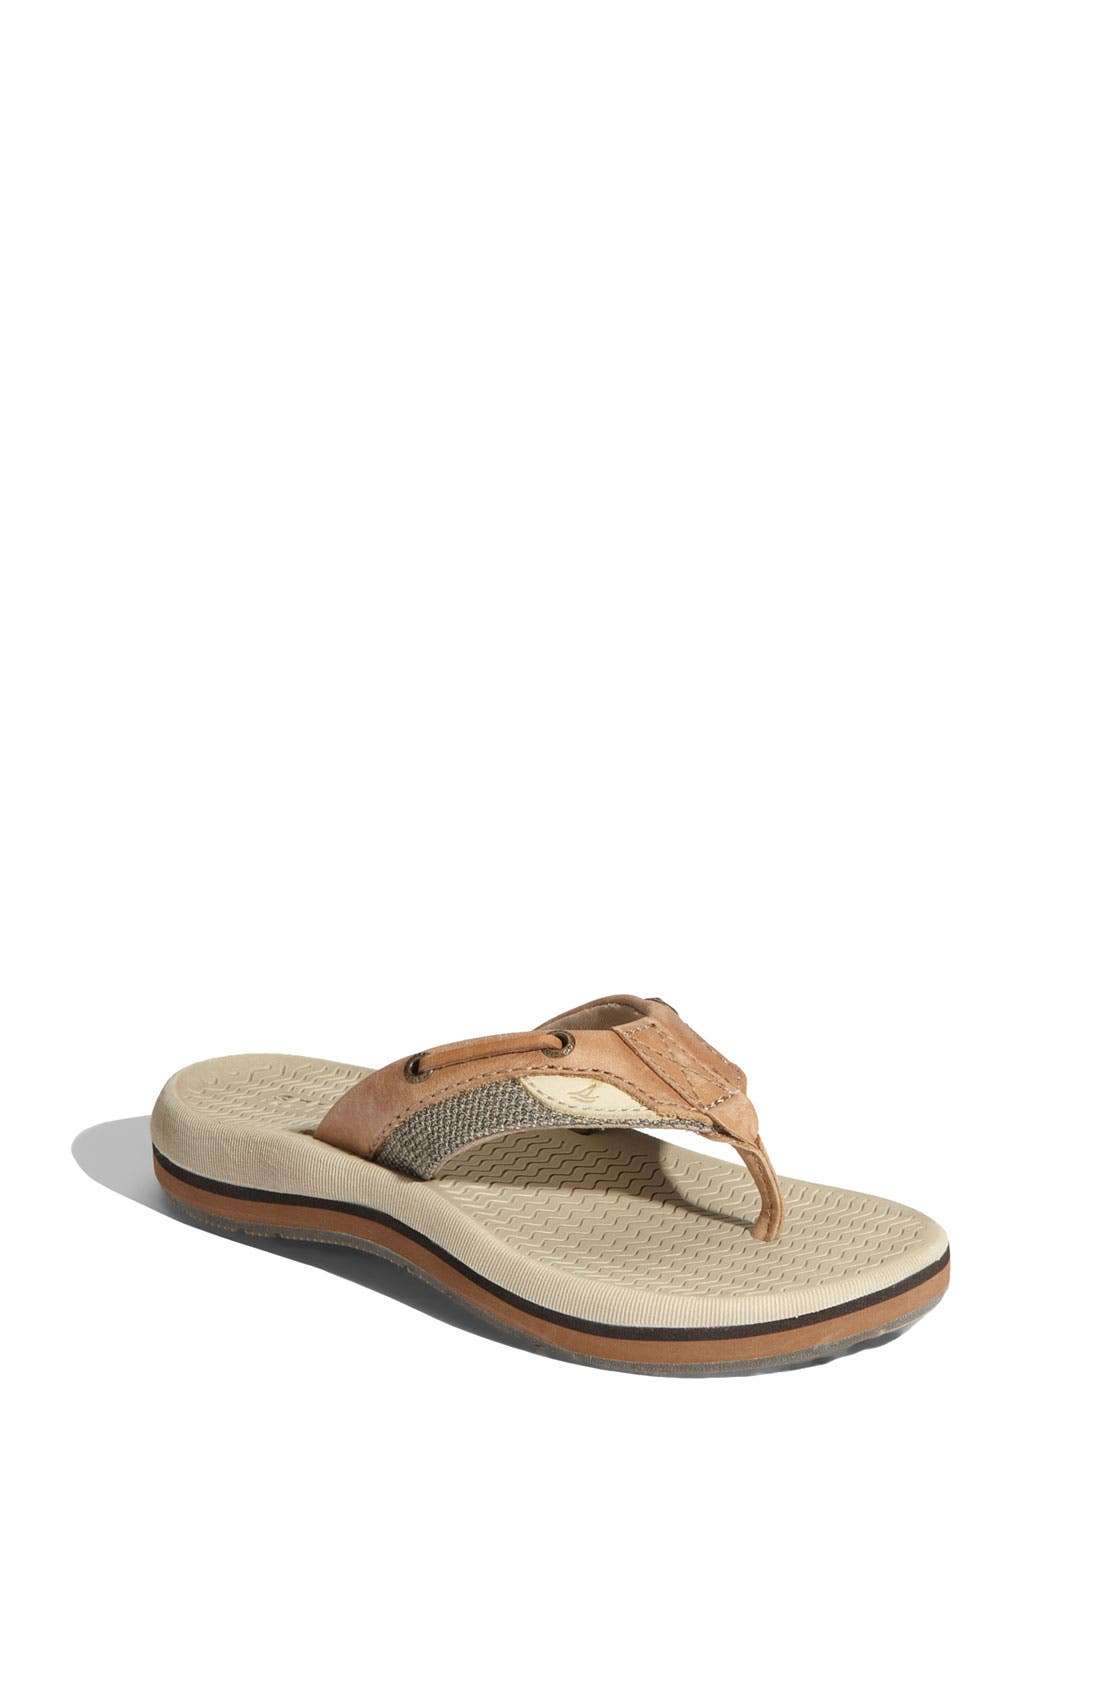 Main Image - Sperry Top-Sider® Kids 'Bluefish' Thong Sandal (Little Kid & Big Kid)